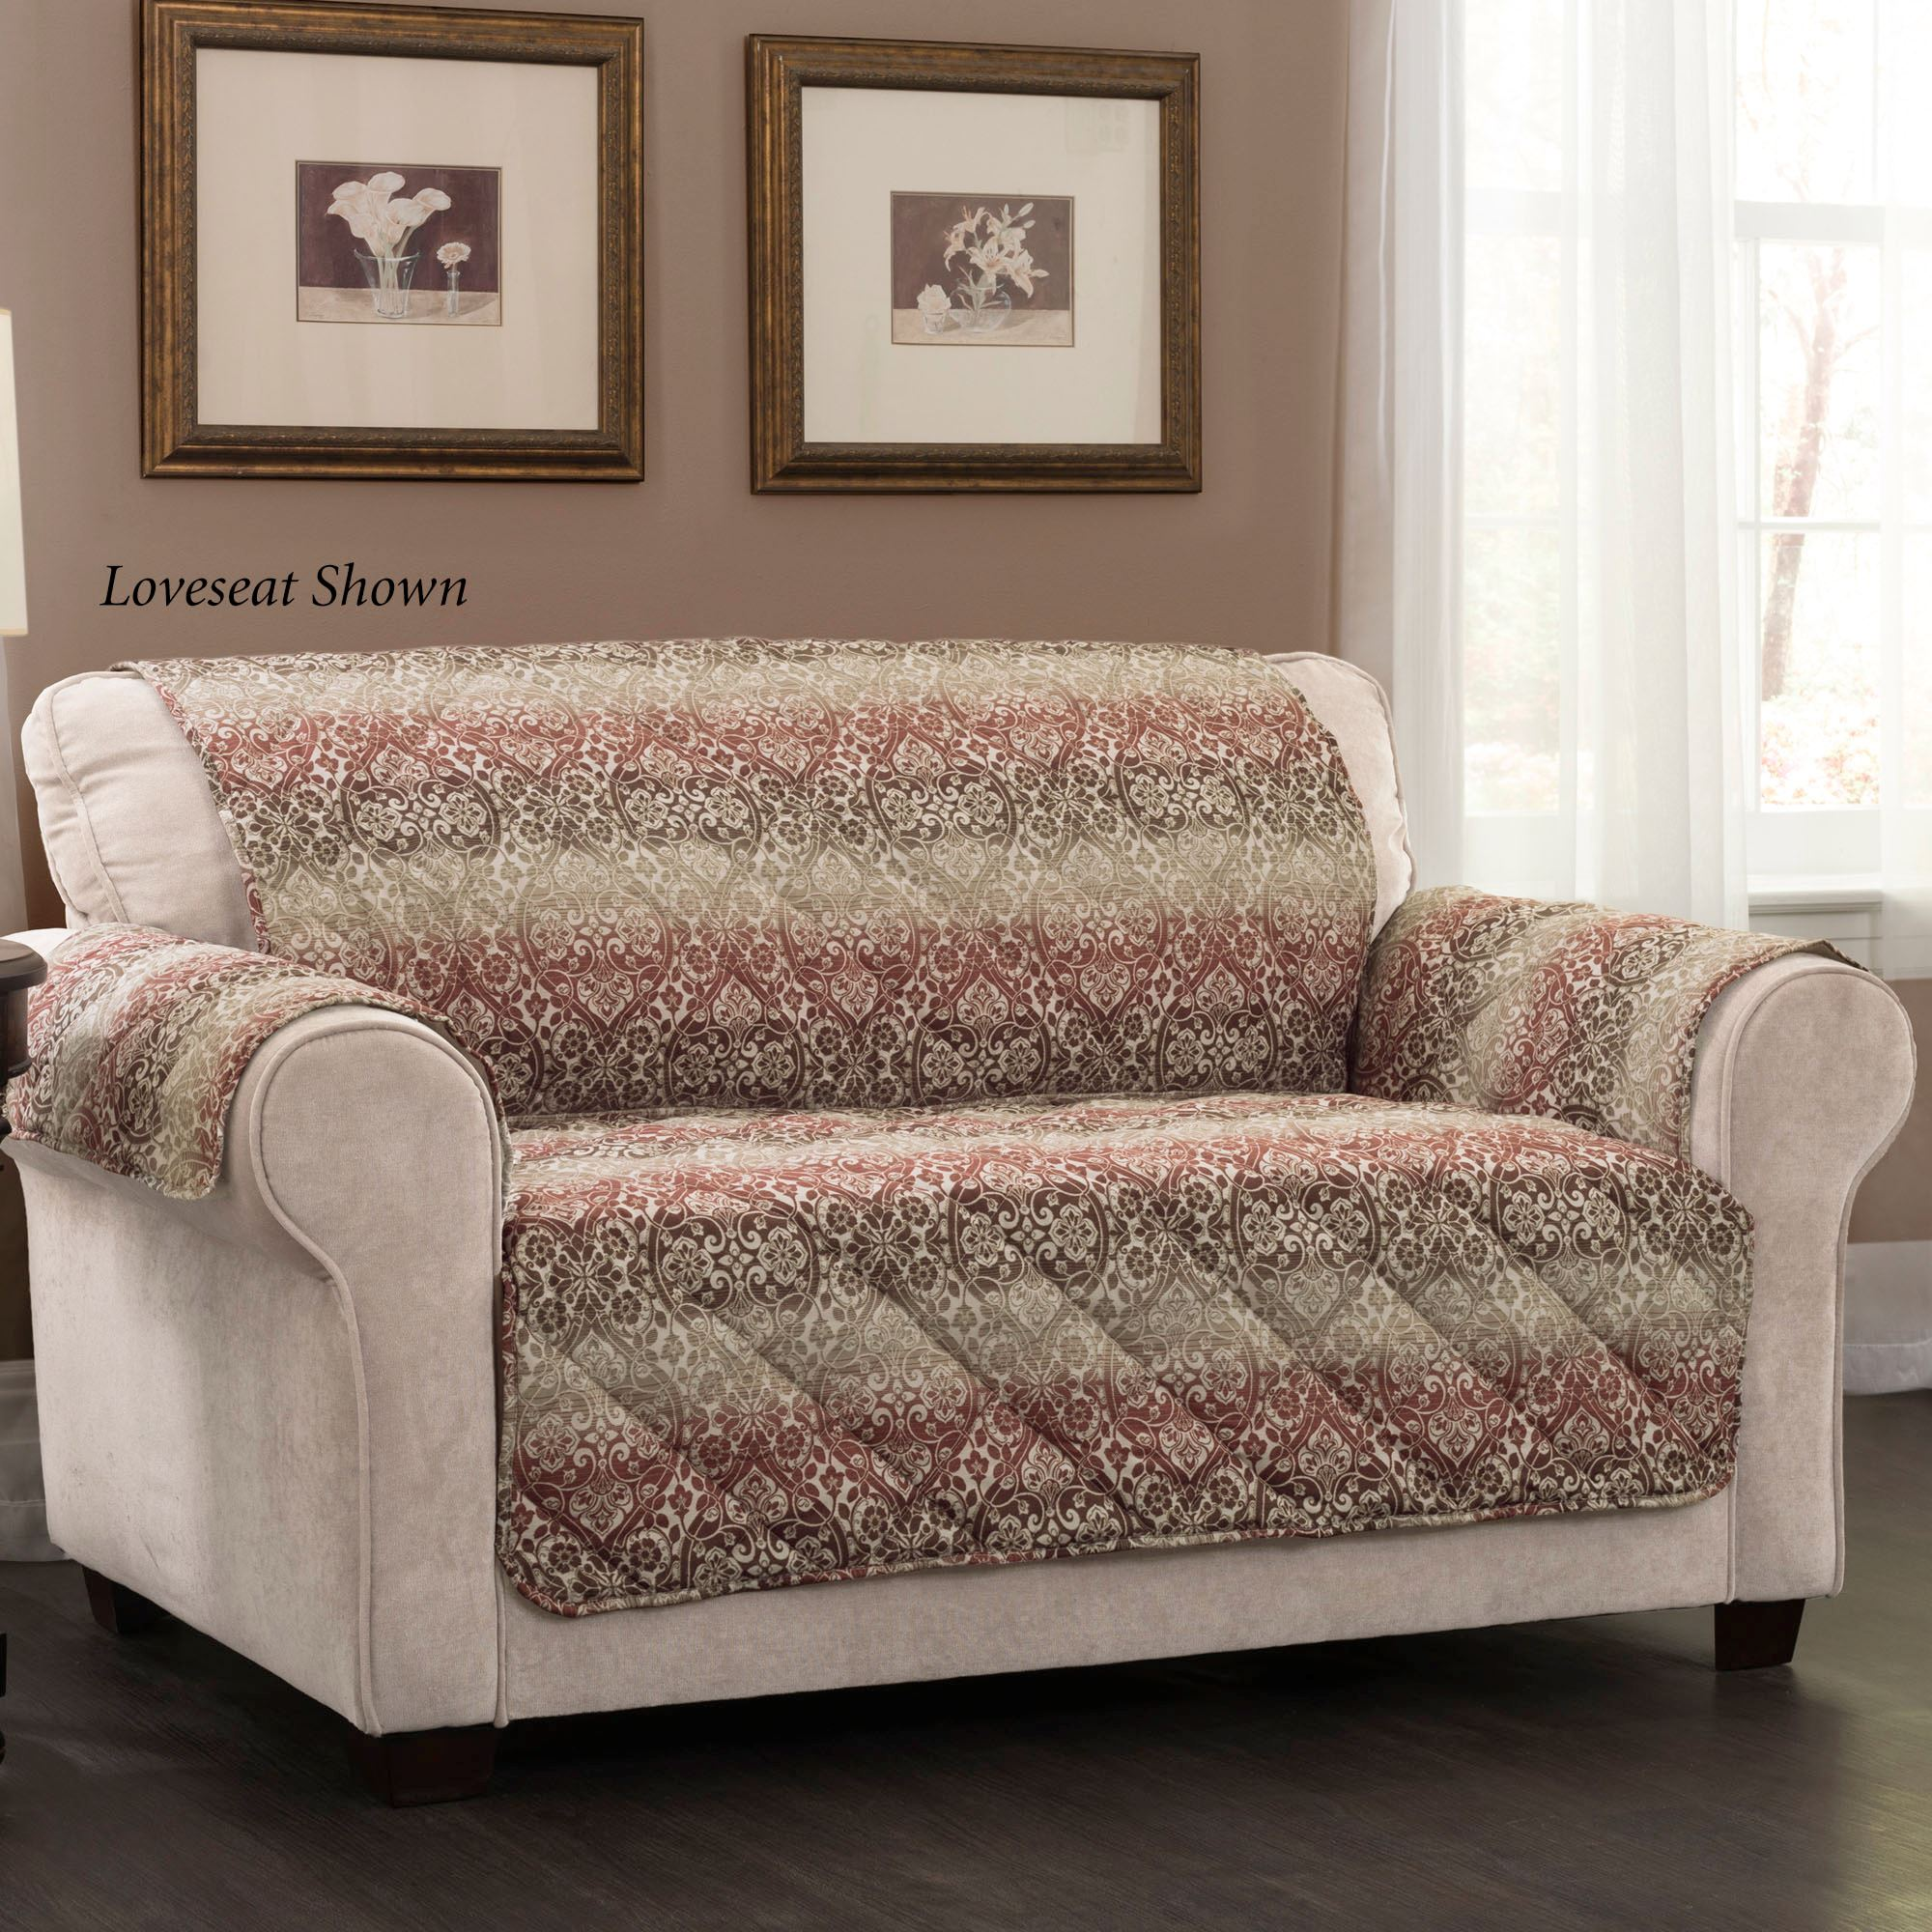 l uk velvet corner cushions living small style of additional full room great back angeles couch curved new brand shaped with cream seat microsuede square seater patterned tropical gray sofa deep x los furniture best red set sectional and sectionals diamond leather fabric measurements size microfiber